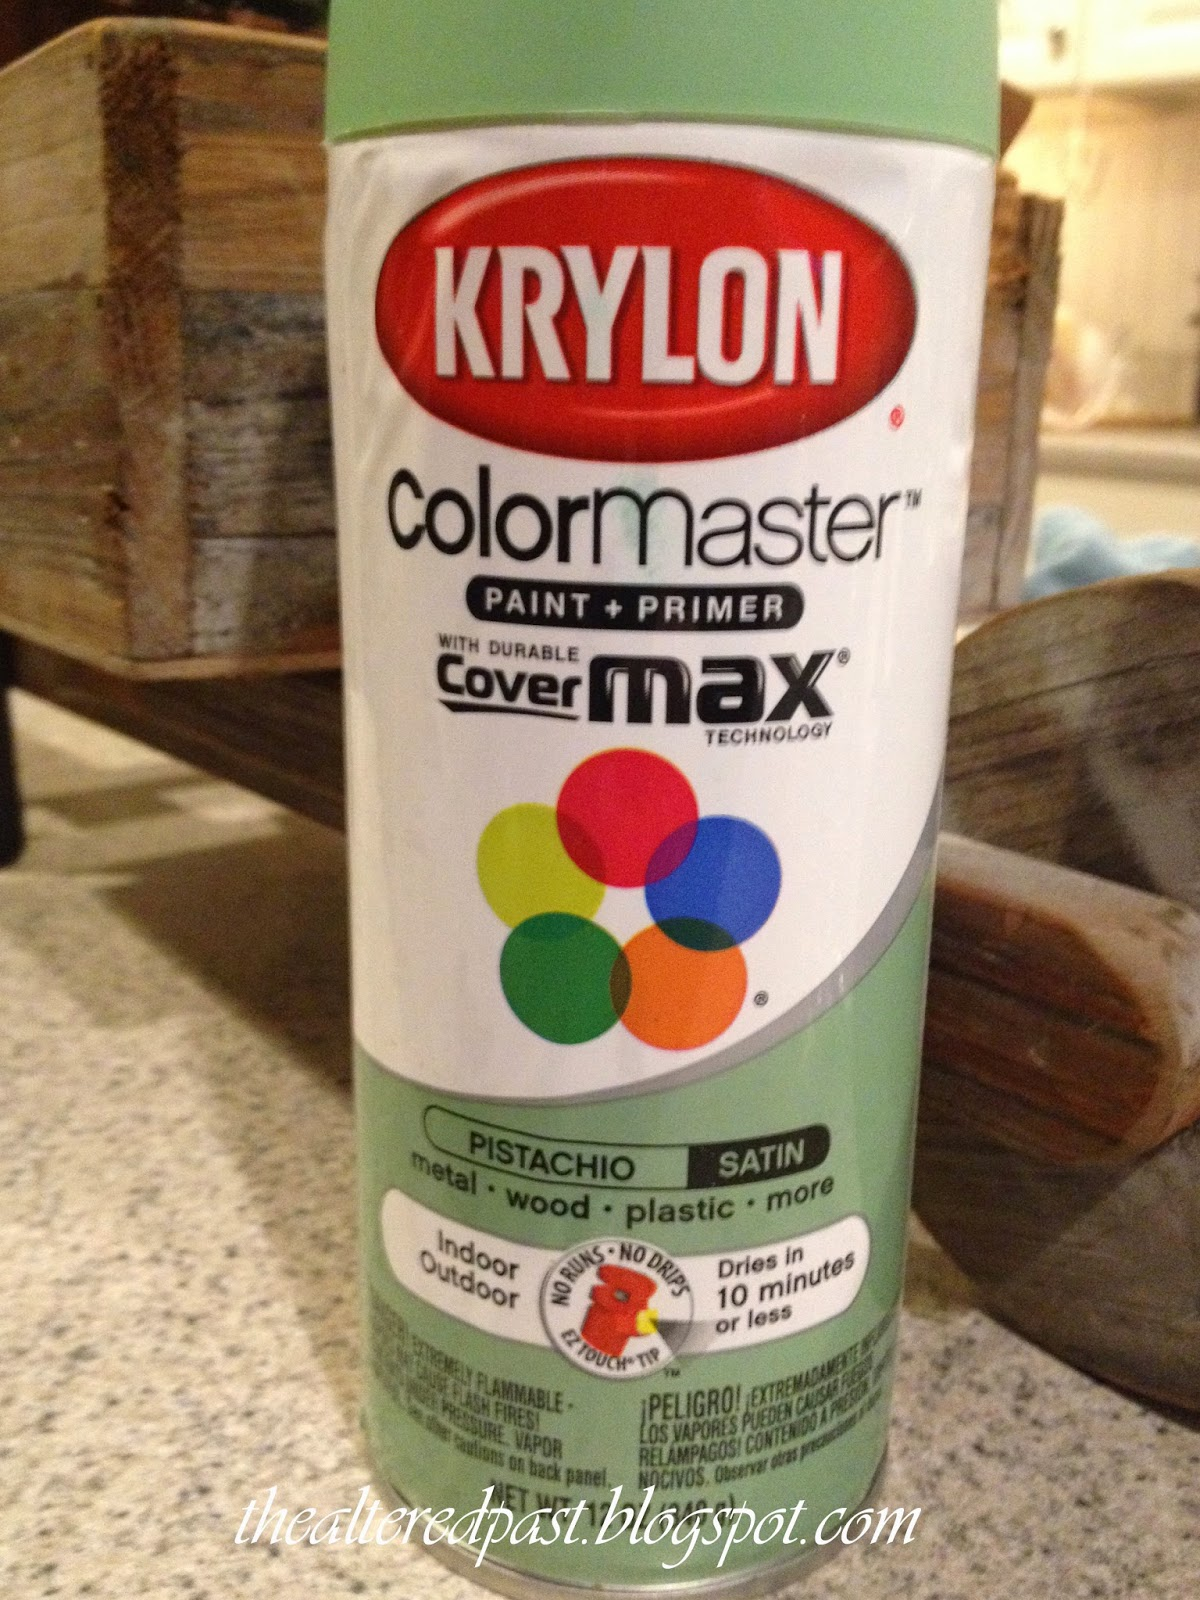 Krylon pistachio satin spray paint